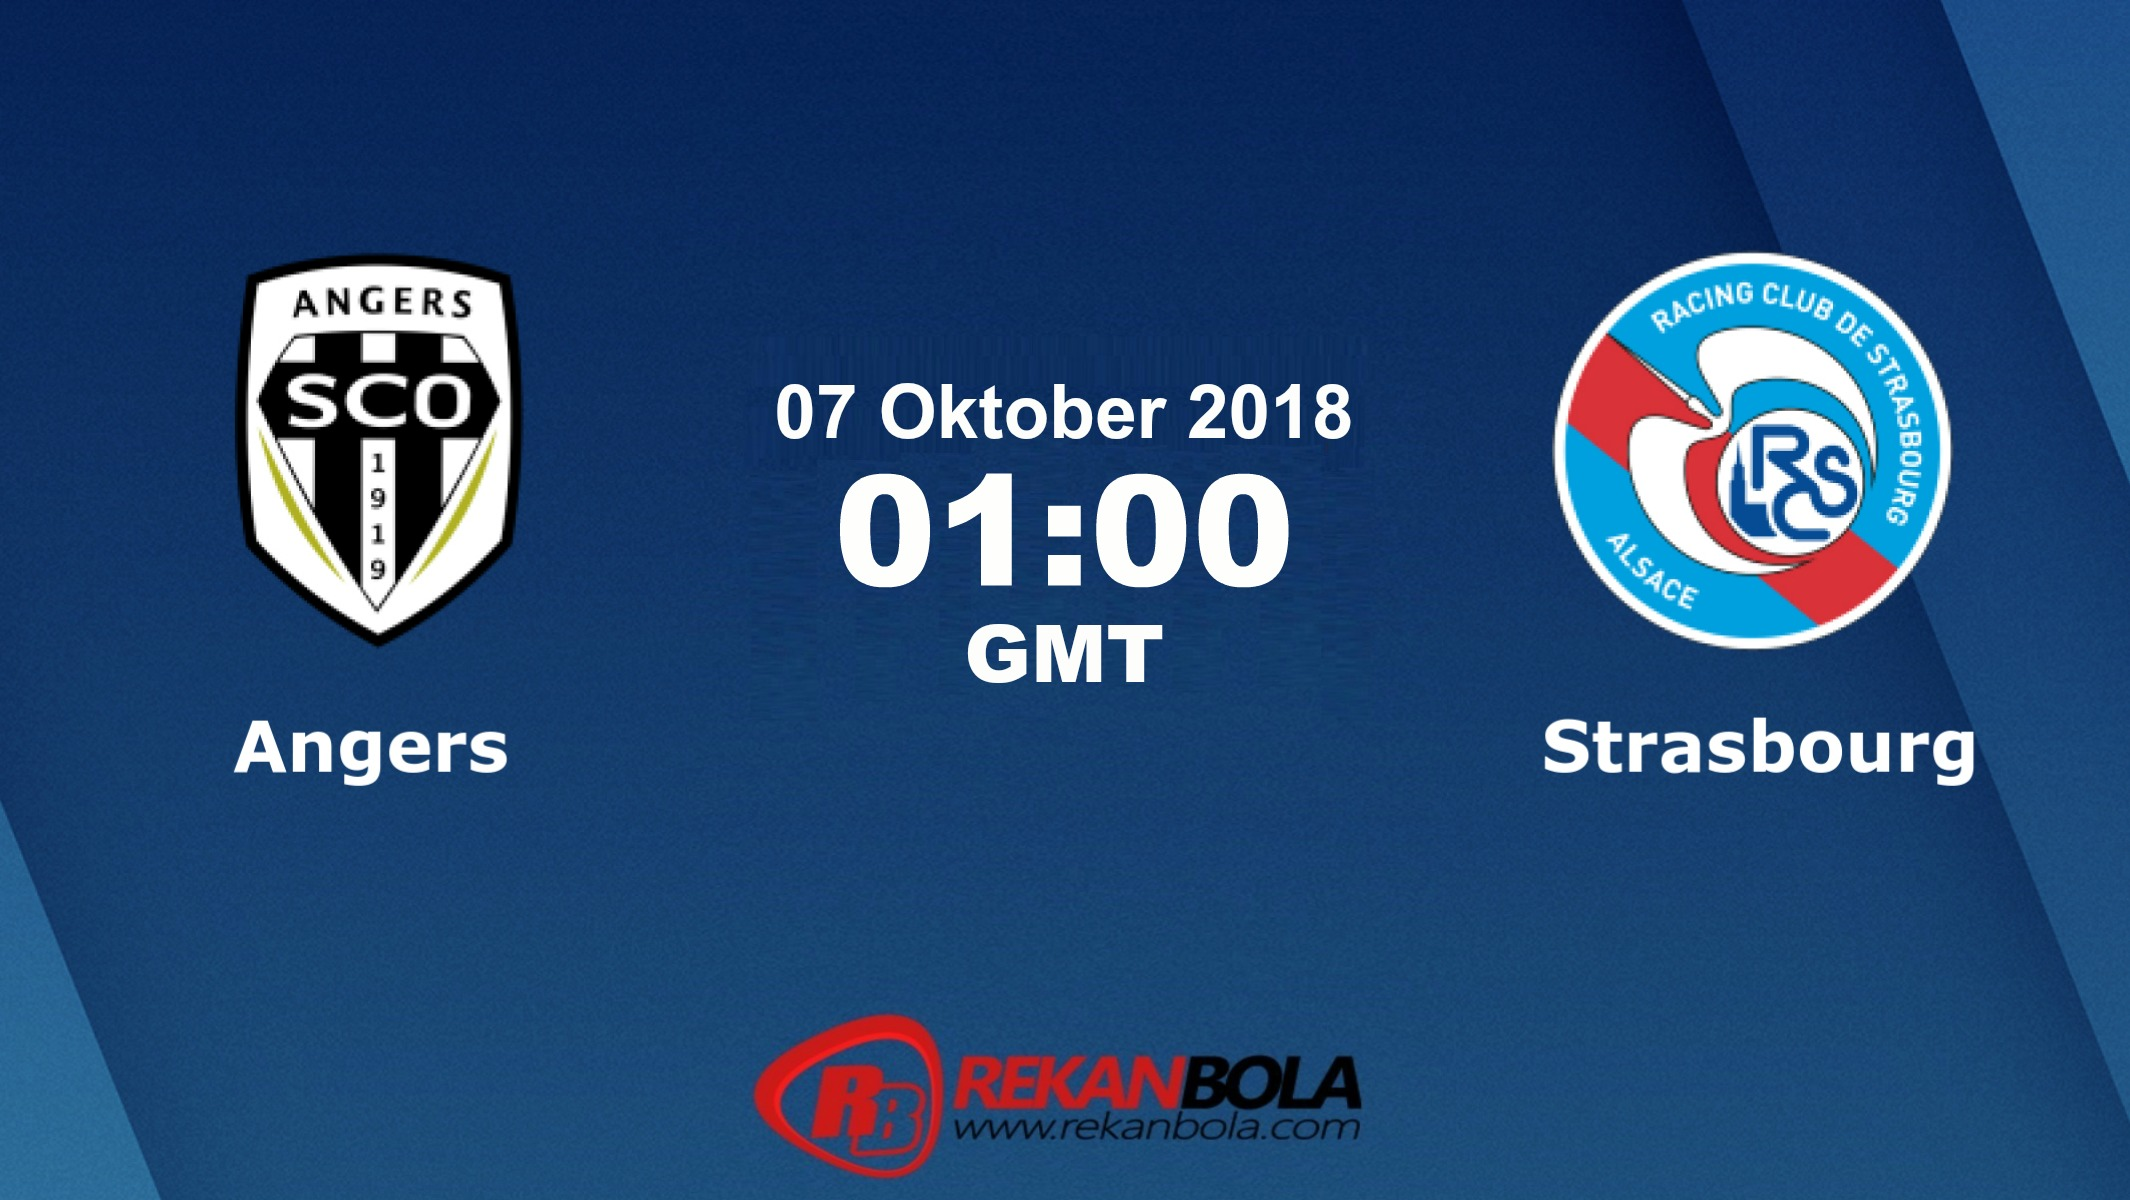 Nonton Siaran Live Streaming Angers Vs Strasbourg 07 Oktober 2018